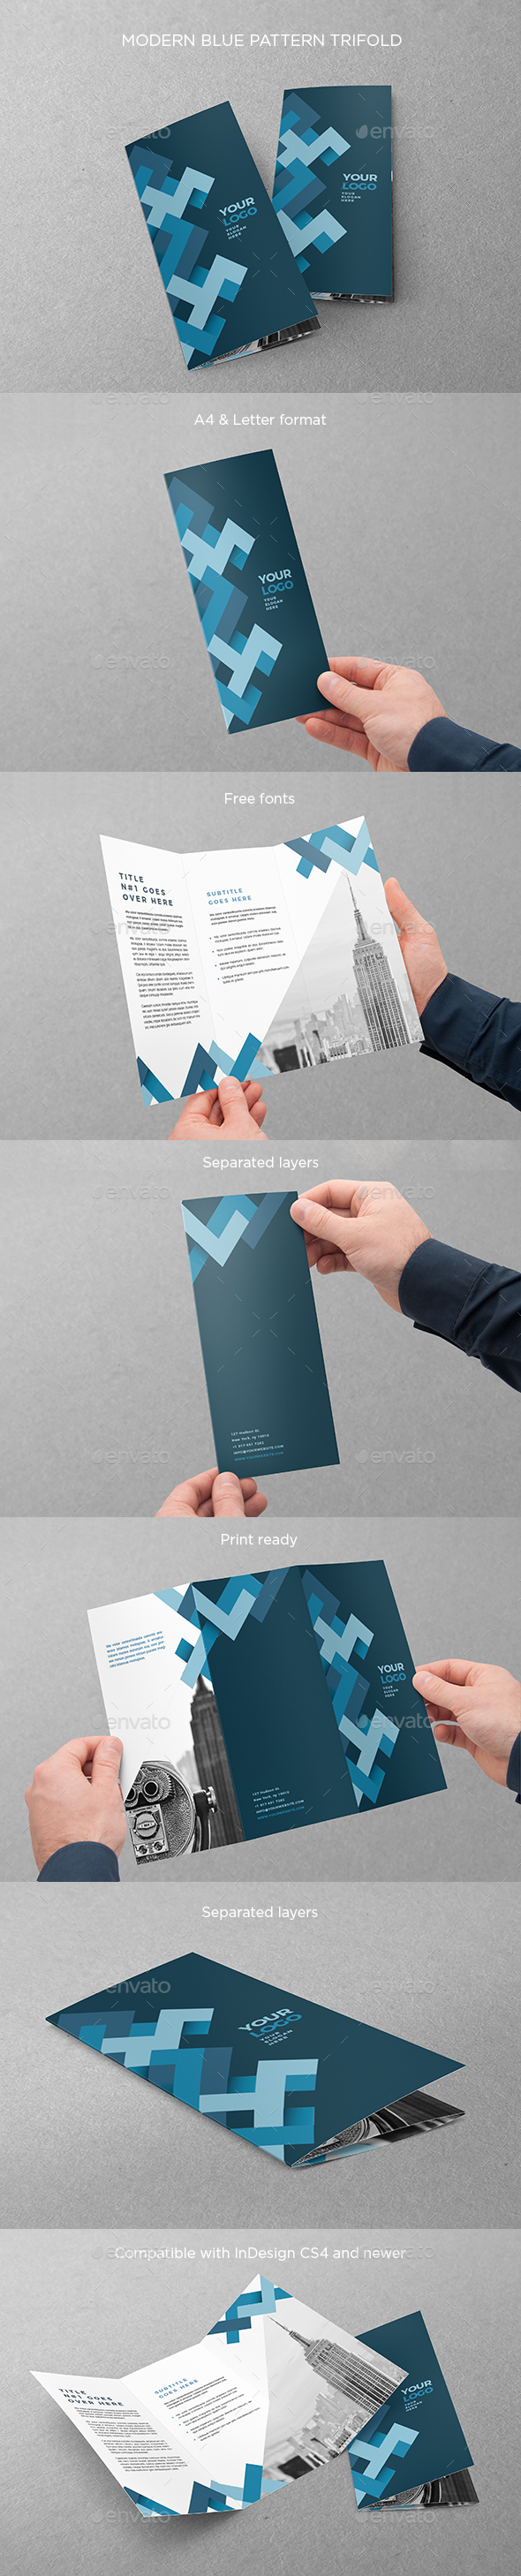 Modern Blue Pattern Trifold - Brochures Print Templates